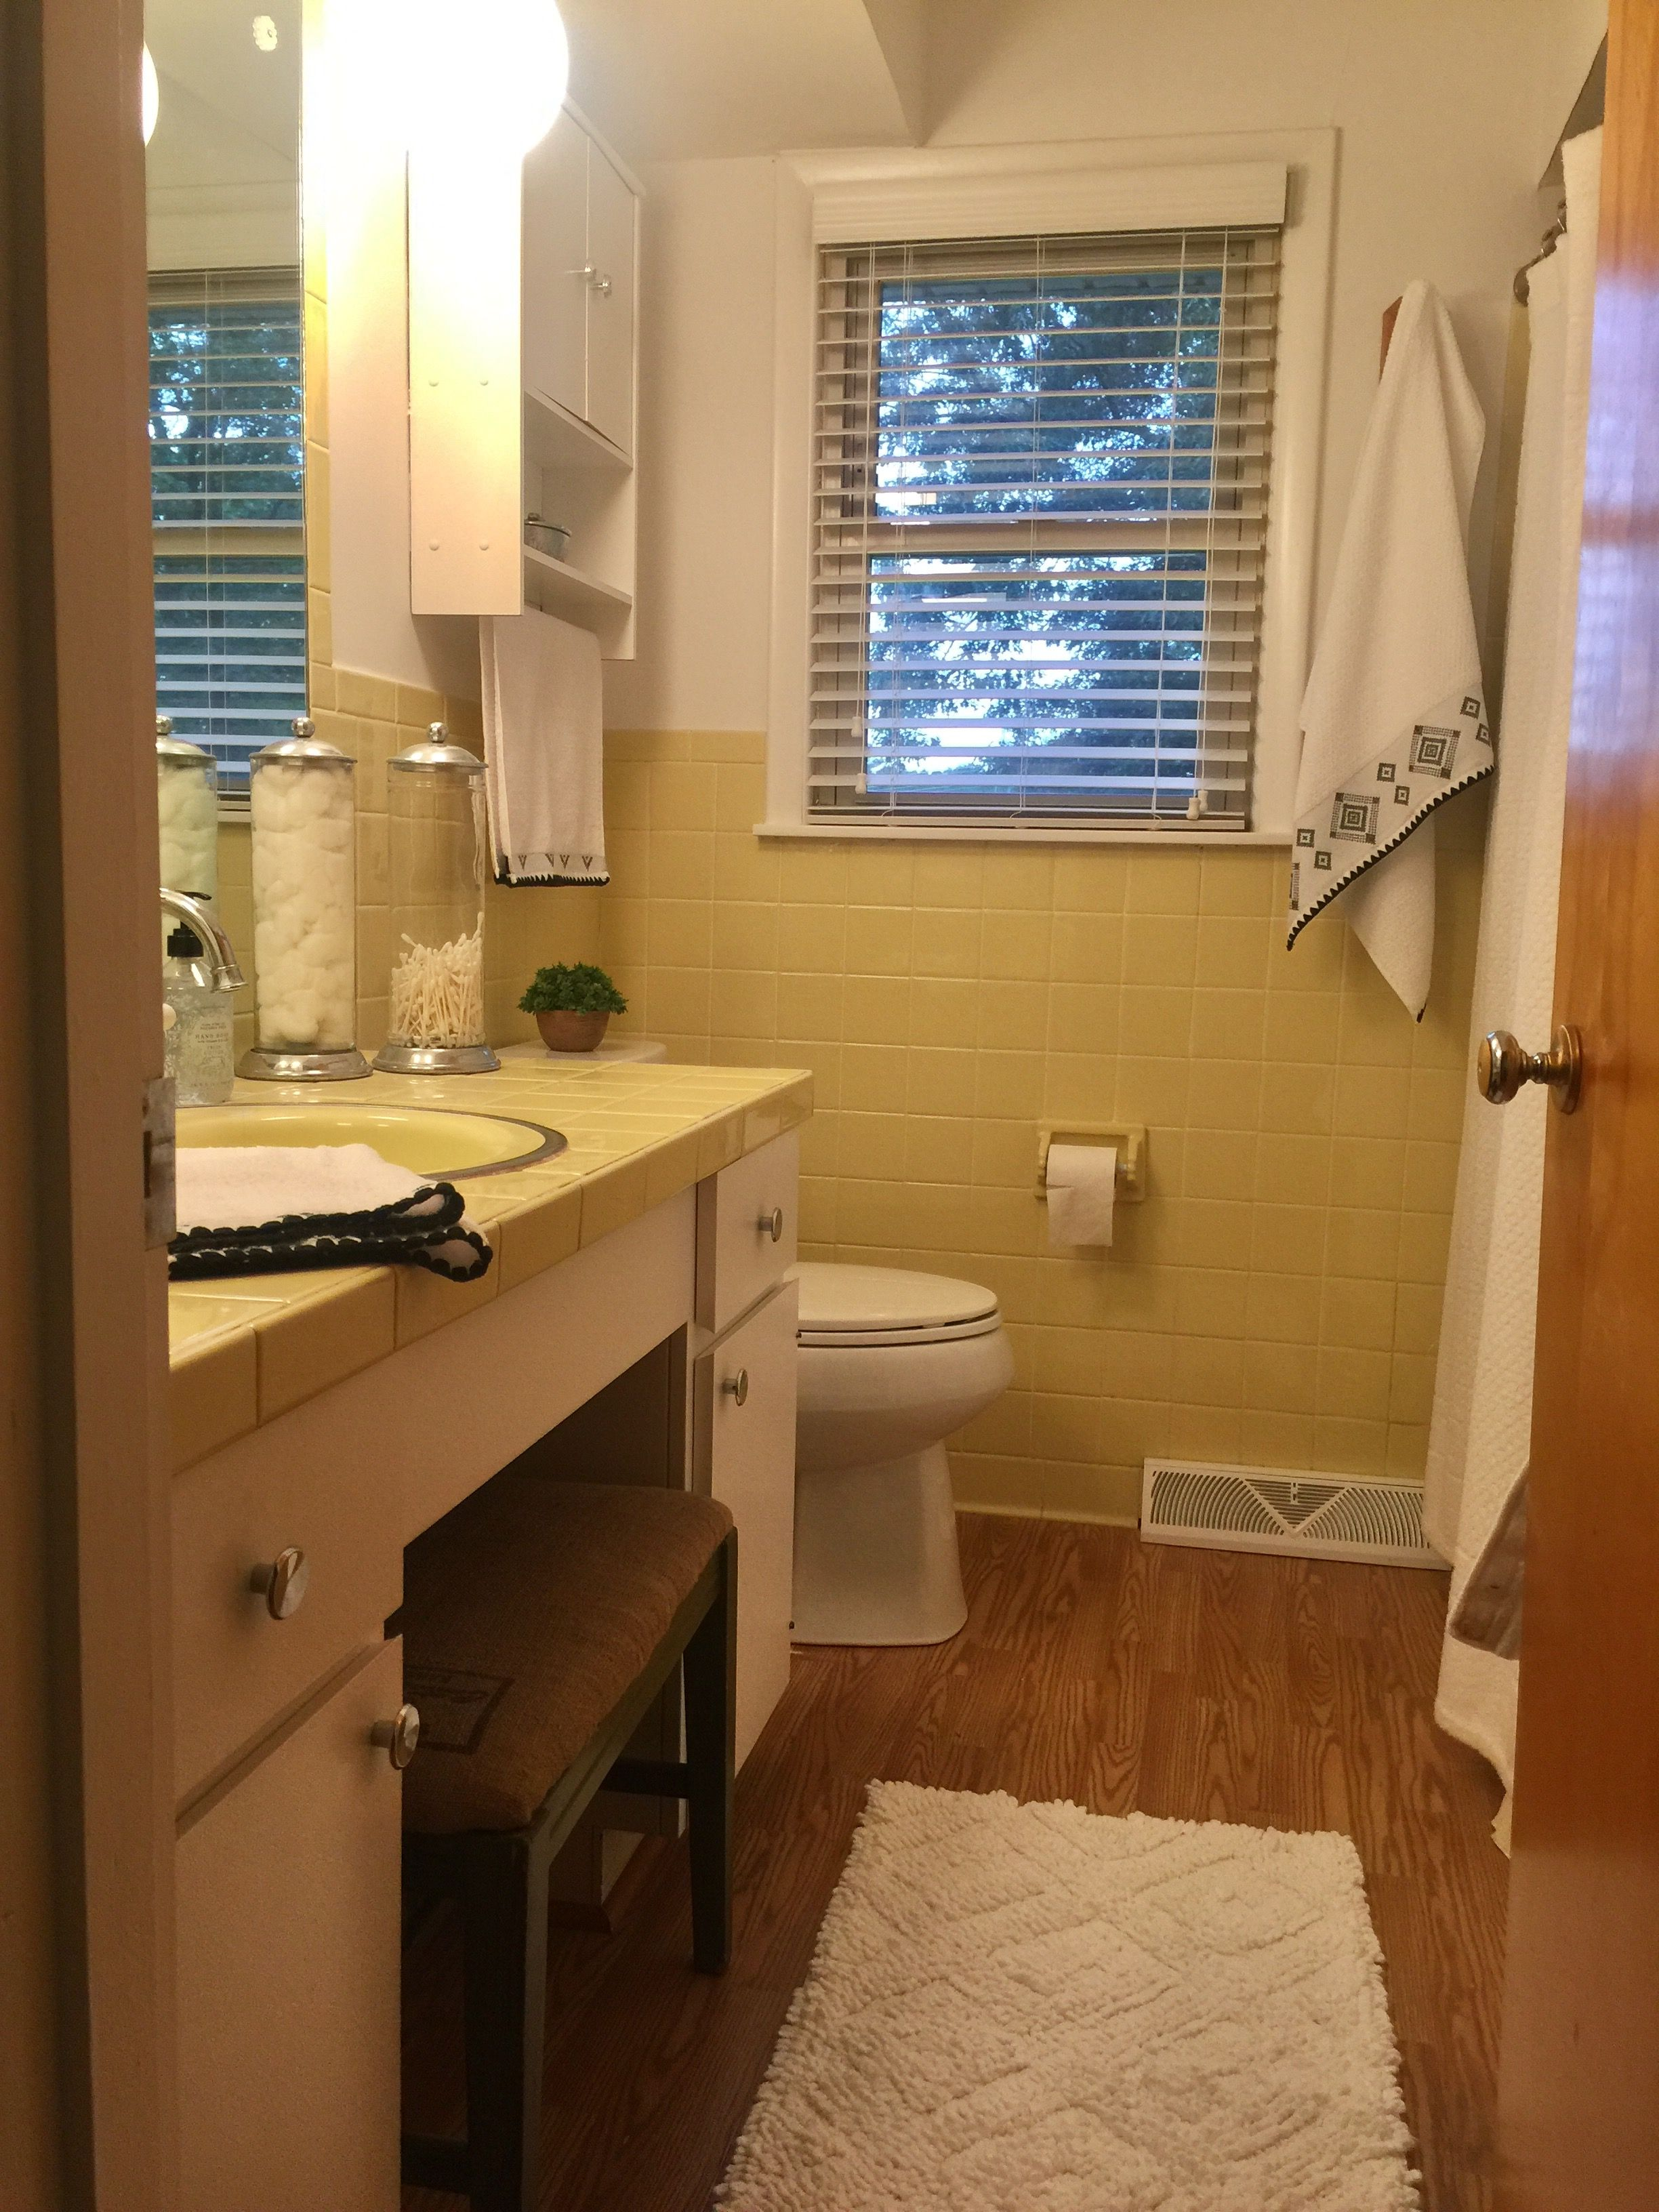 Vintage yellow tile bathroom - Embrace The Suck Of Vintage Yellow Tile